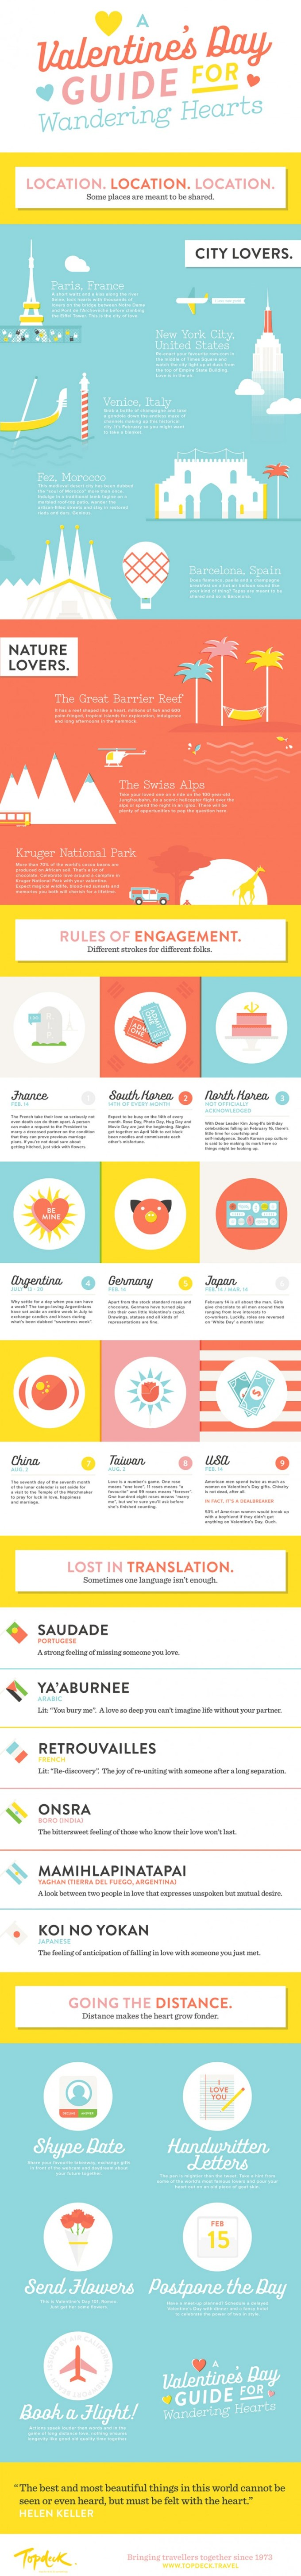 a-valentines-day-guide-for-wandering-hearts_52f428c411038_w745